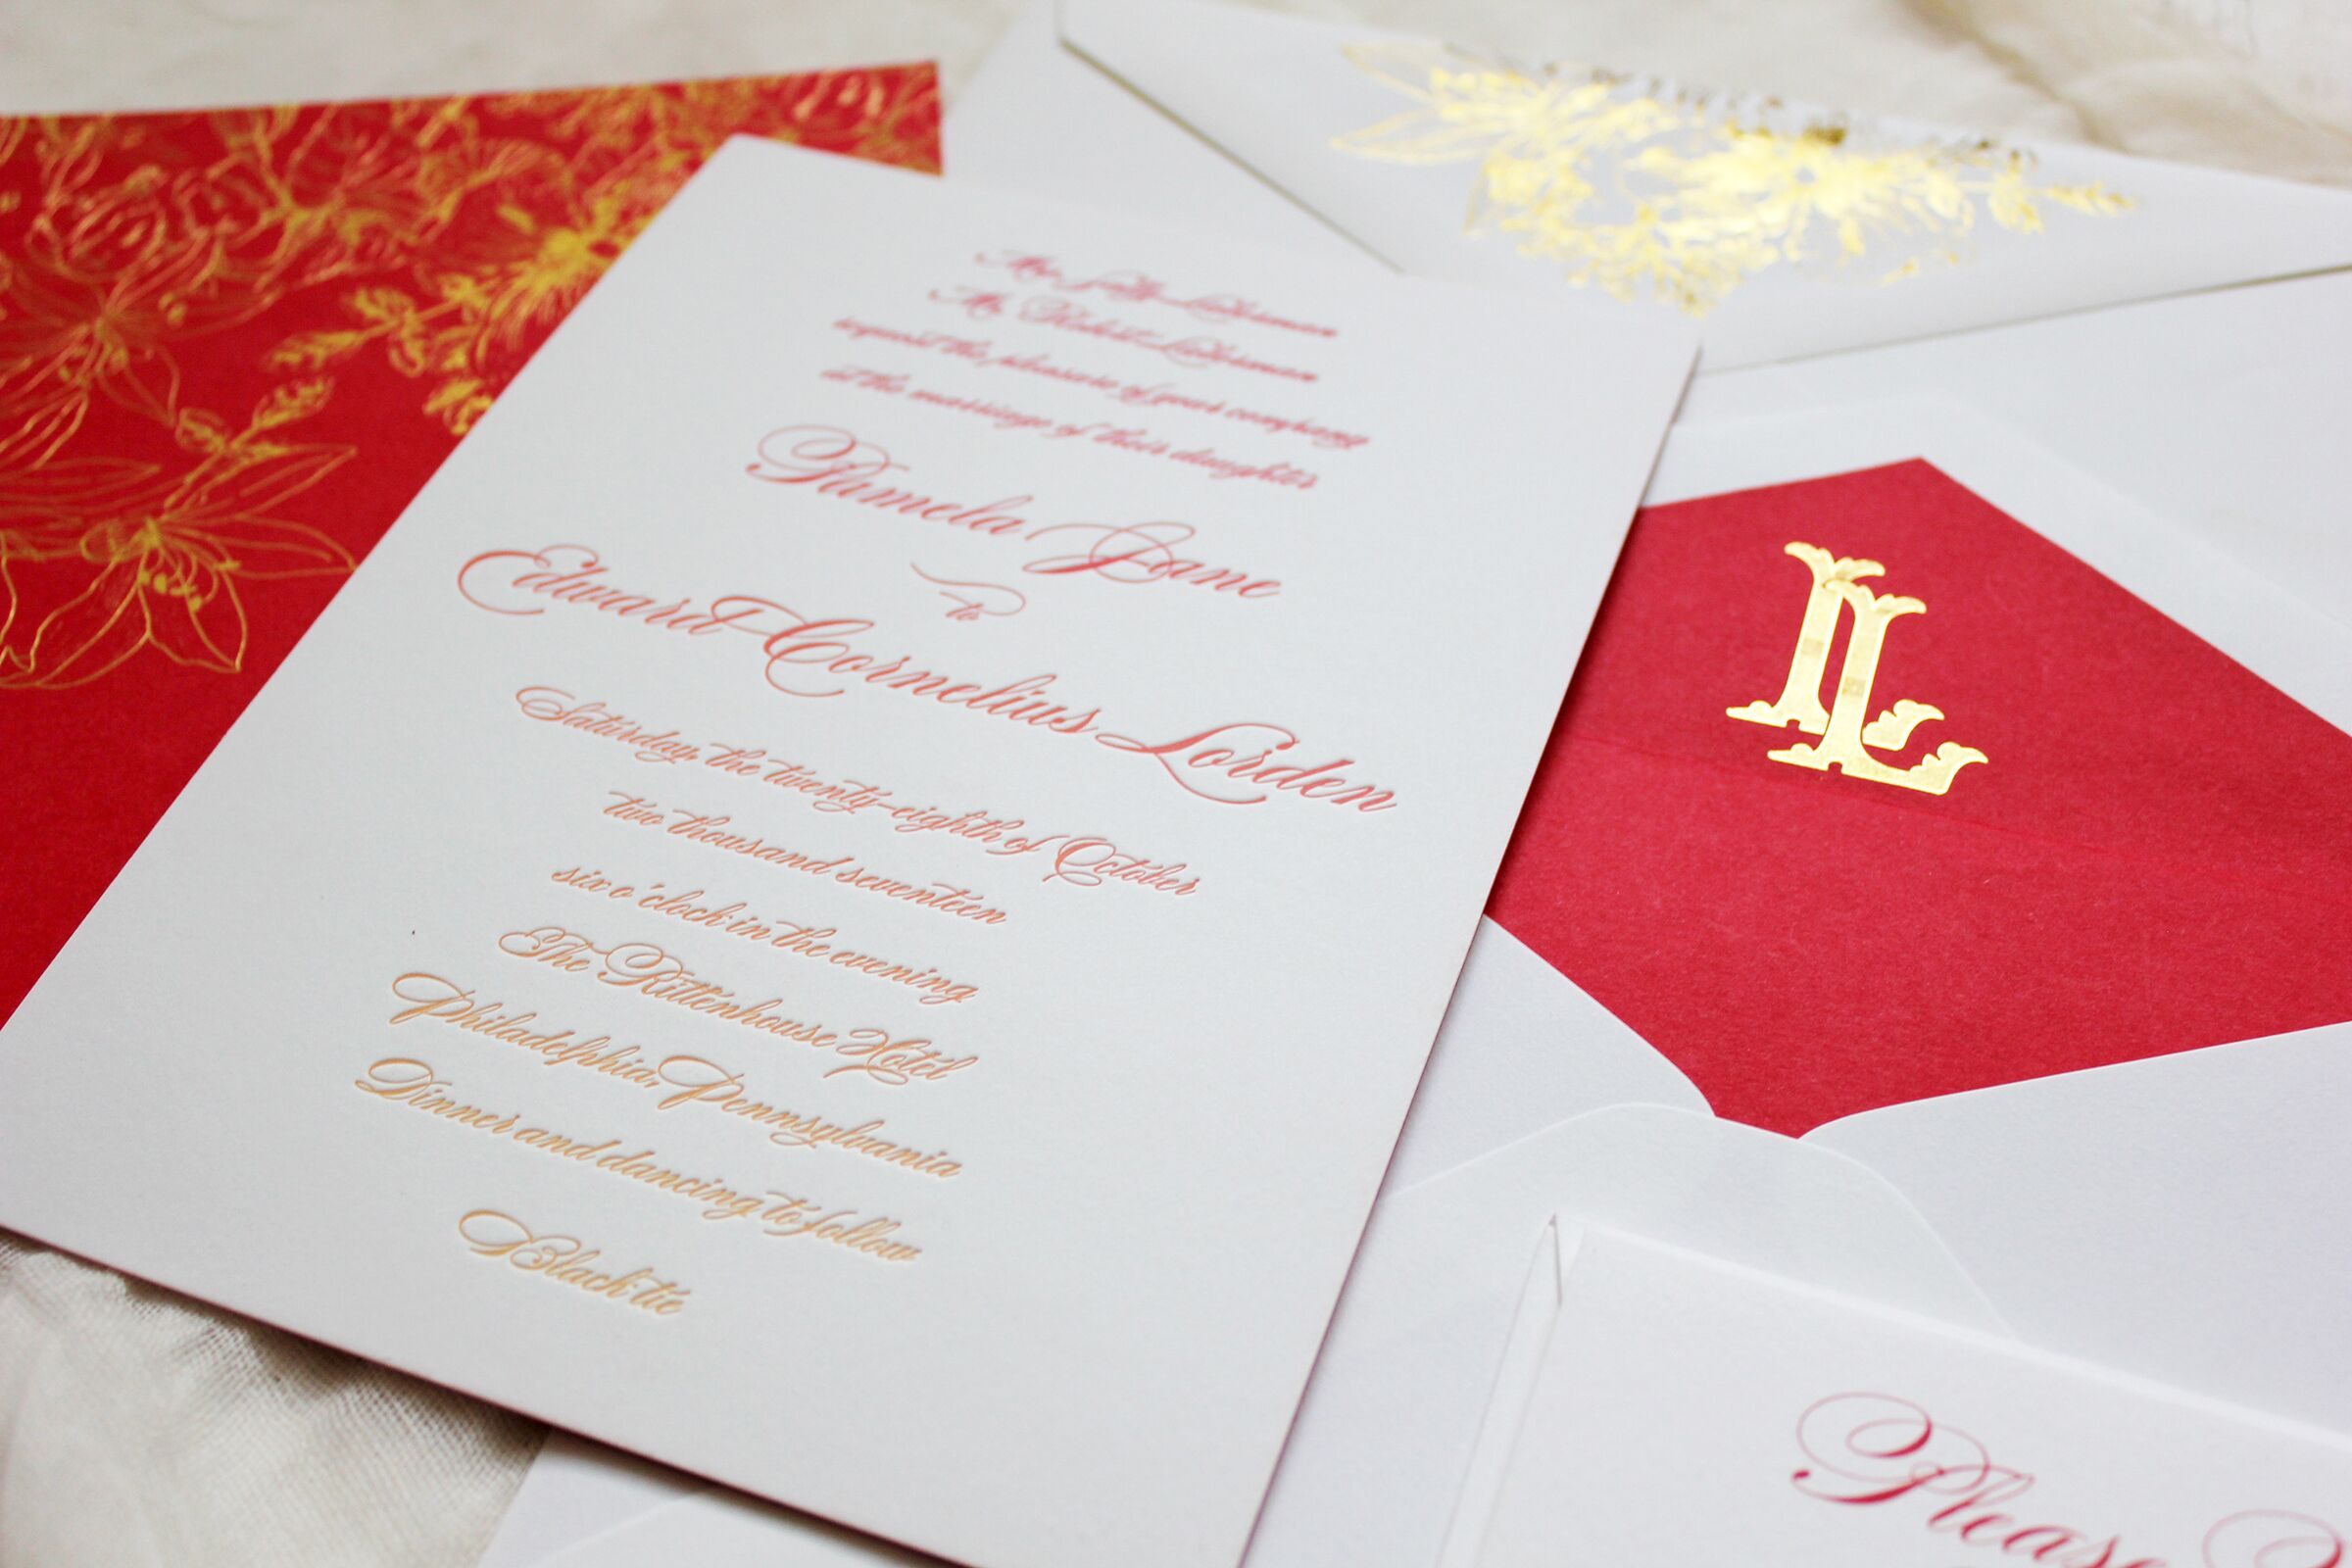 Chick Invitations and Design - Philadelphia, PA